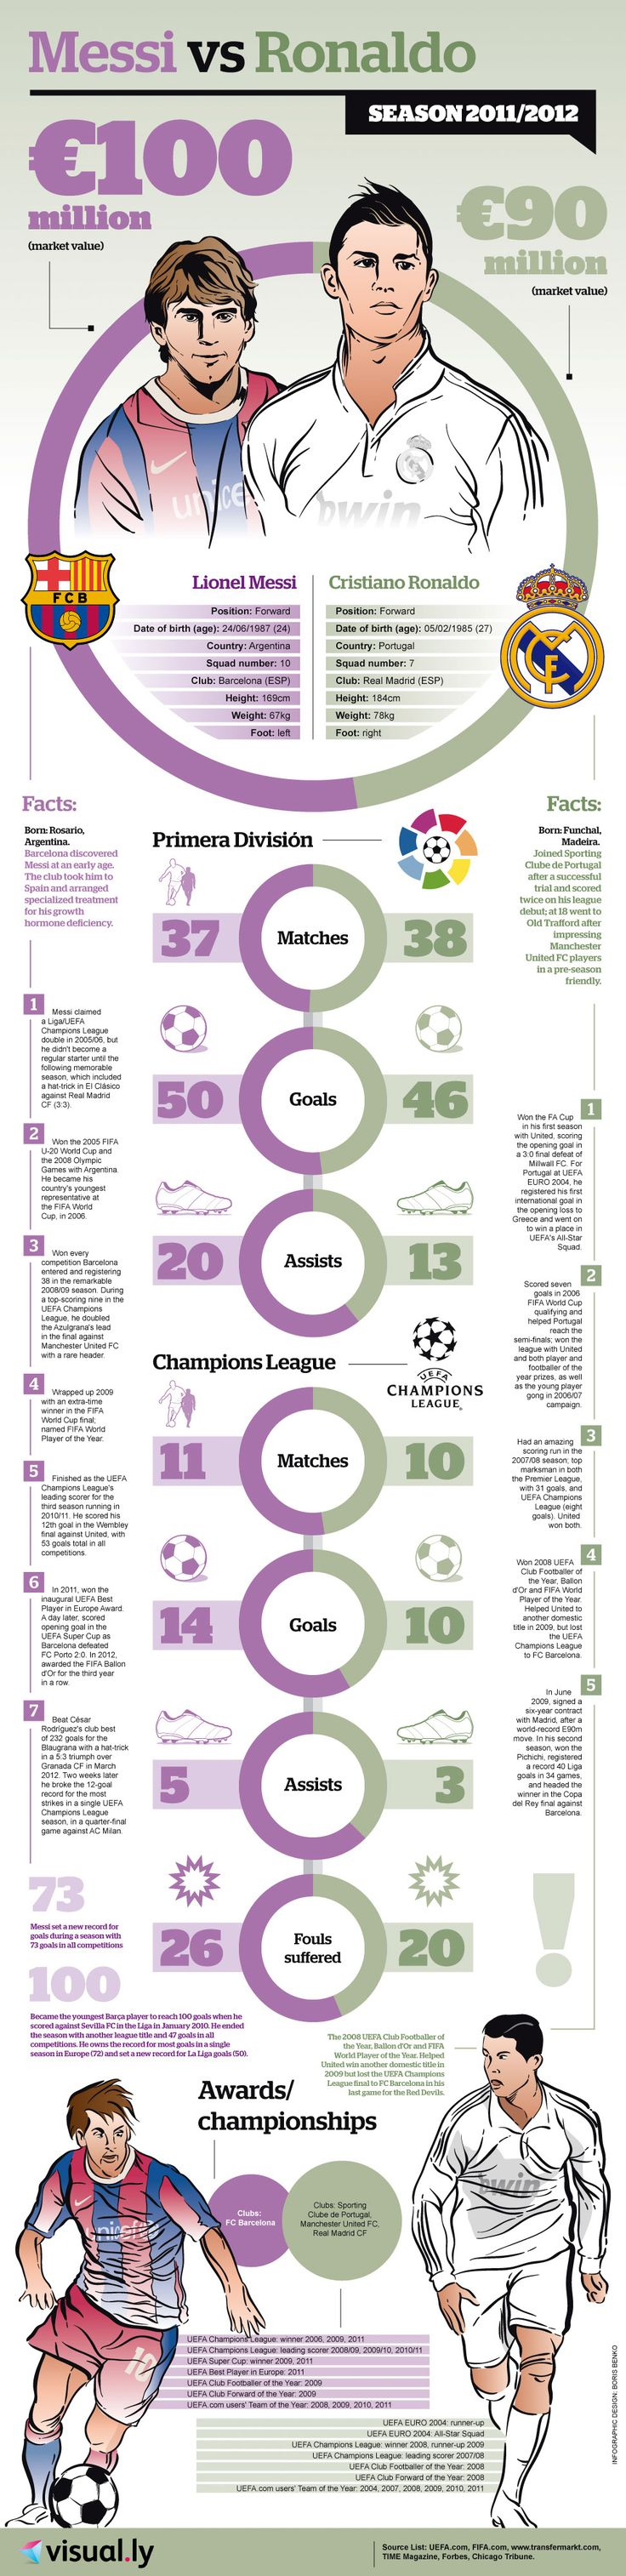 Messi-Vs-Ronaldo-infographic  Find always more on http://infographicsmania.com